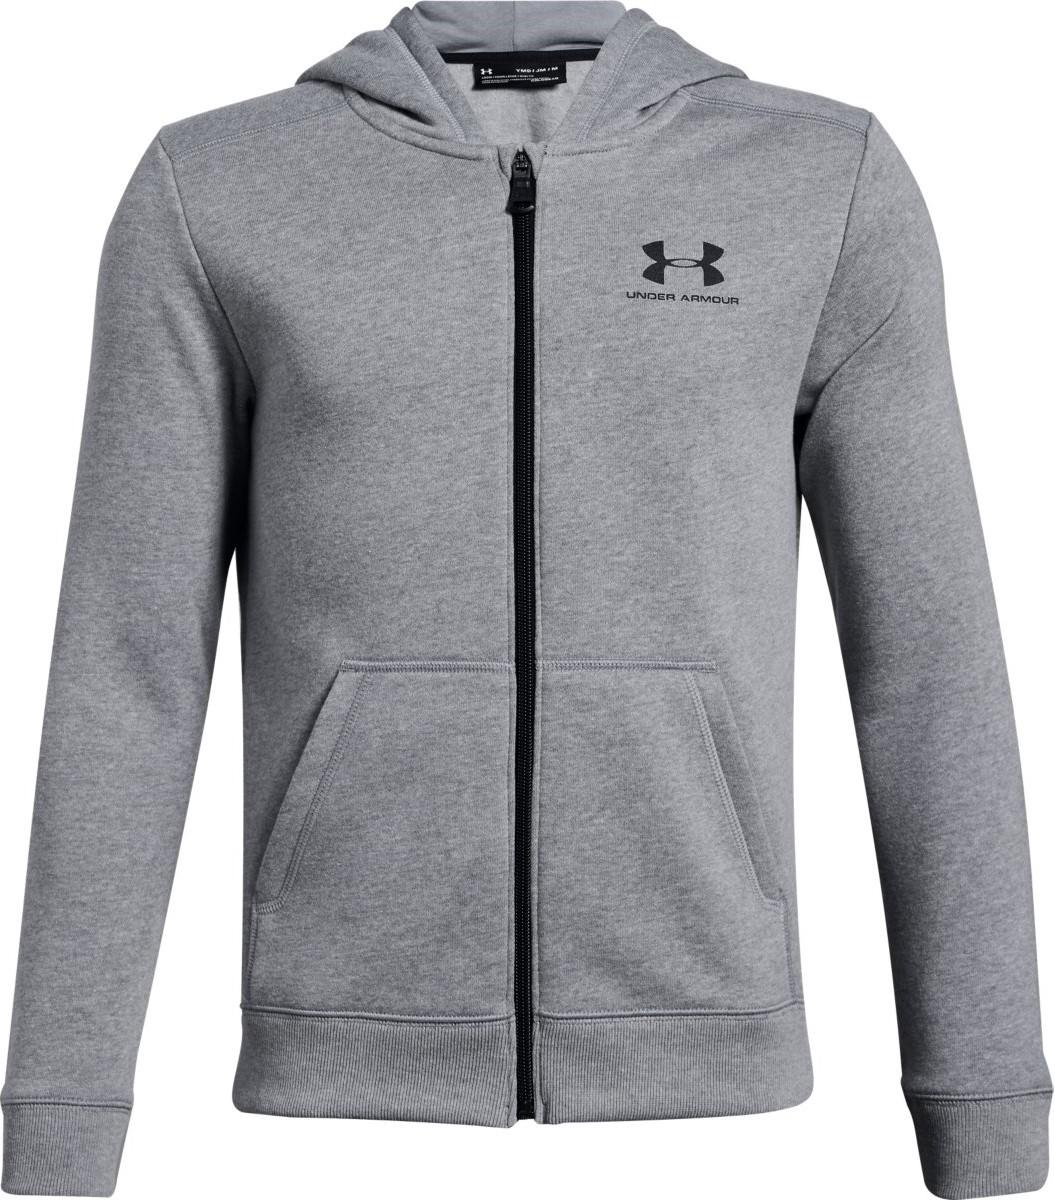 Dětská mikina Under Armour Cotton Fleece,XS